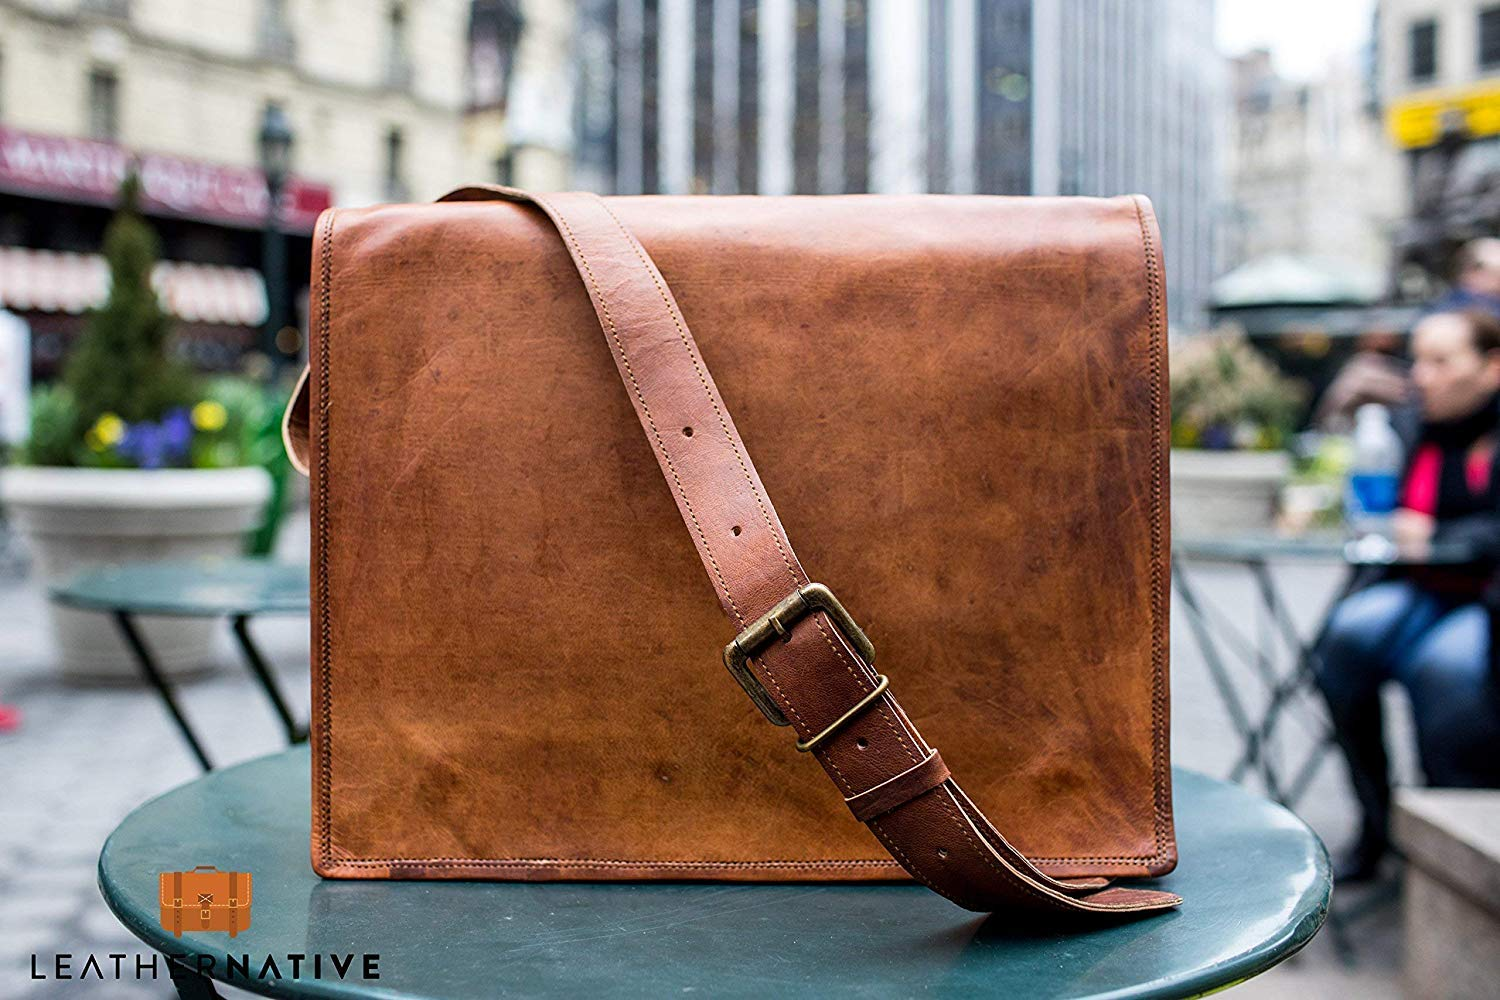 Leather Messenger Bag Courier Satchel - 15 inch Handmade, Takes a Small Laptop or iPad - Handsome Rich Patina Improves with Age, Retro Looks with Brass Fittings - Crossbody Fit for Men and Women